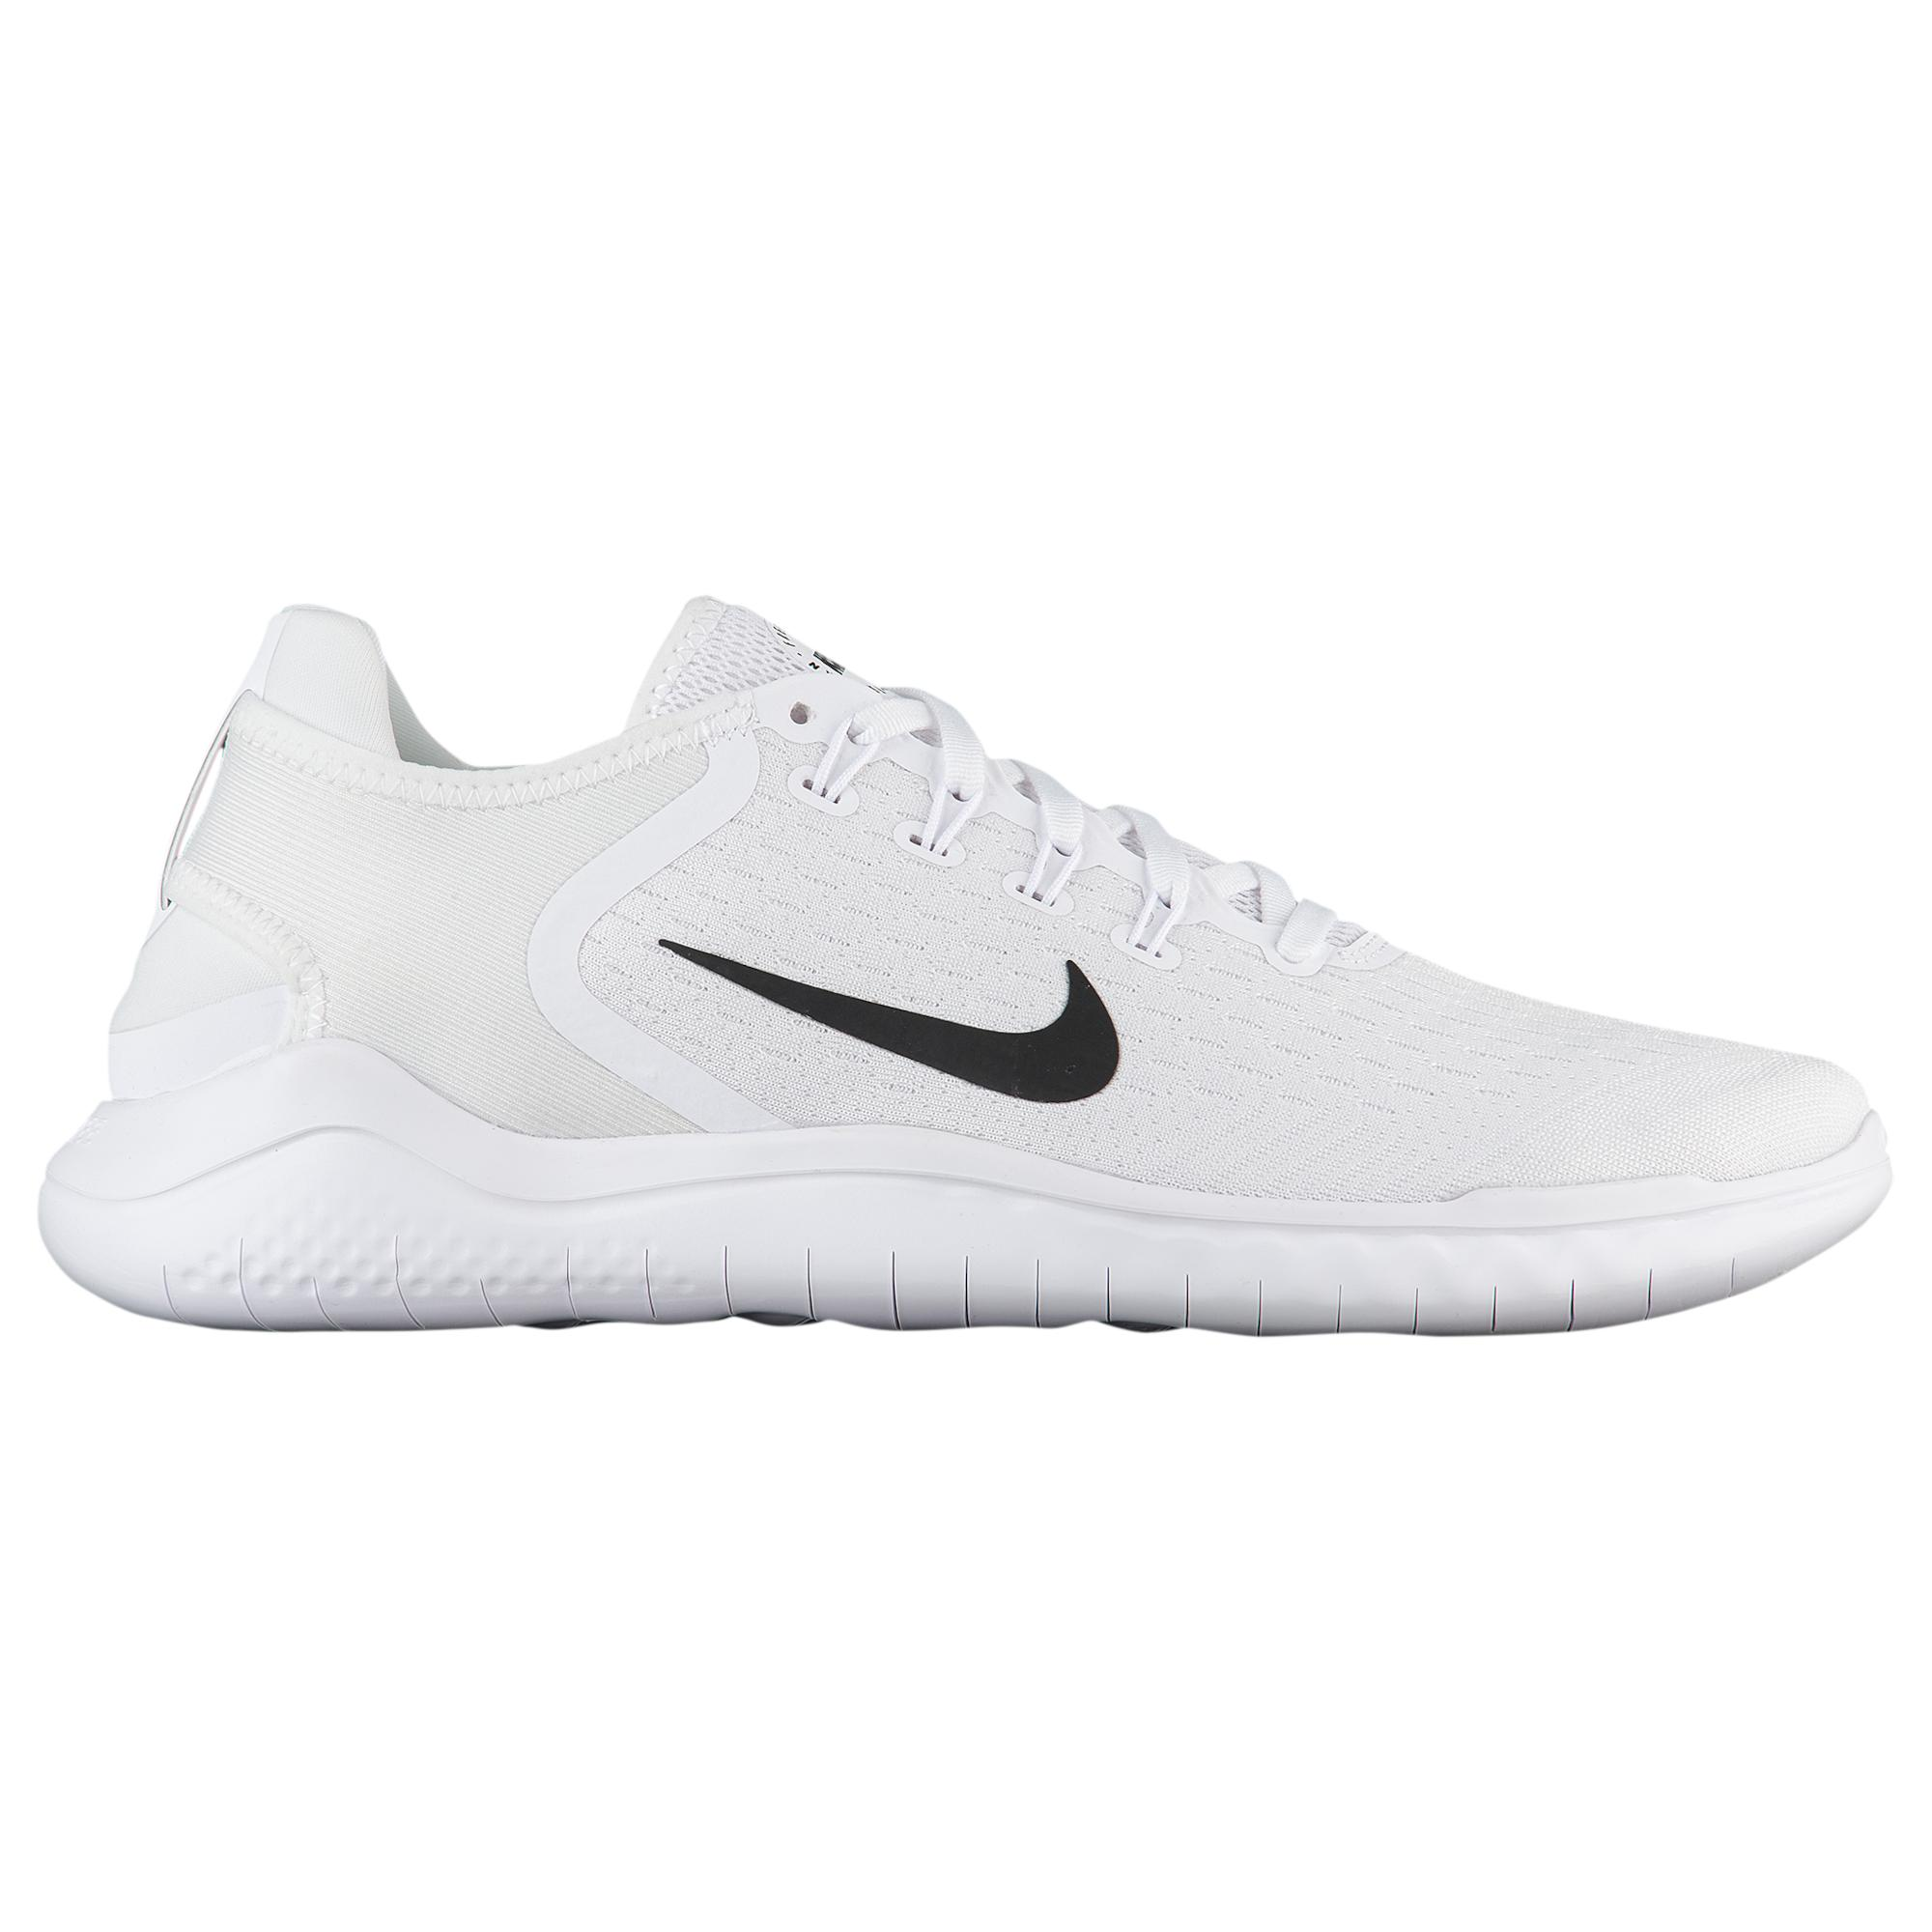 Free Rn 2018 Running Shoes in White